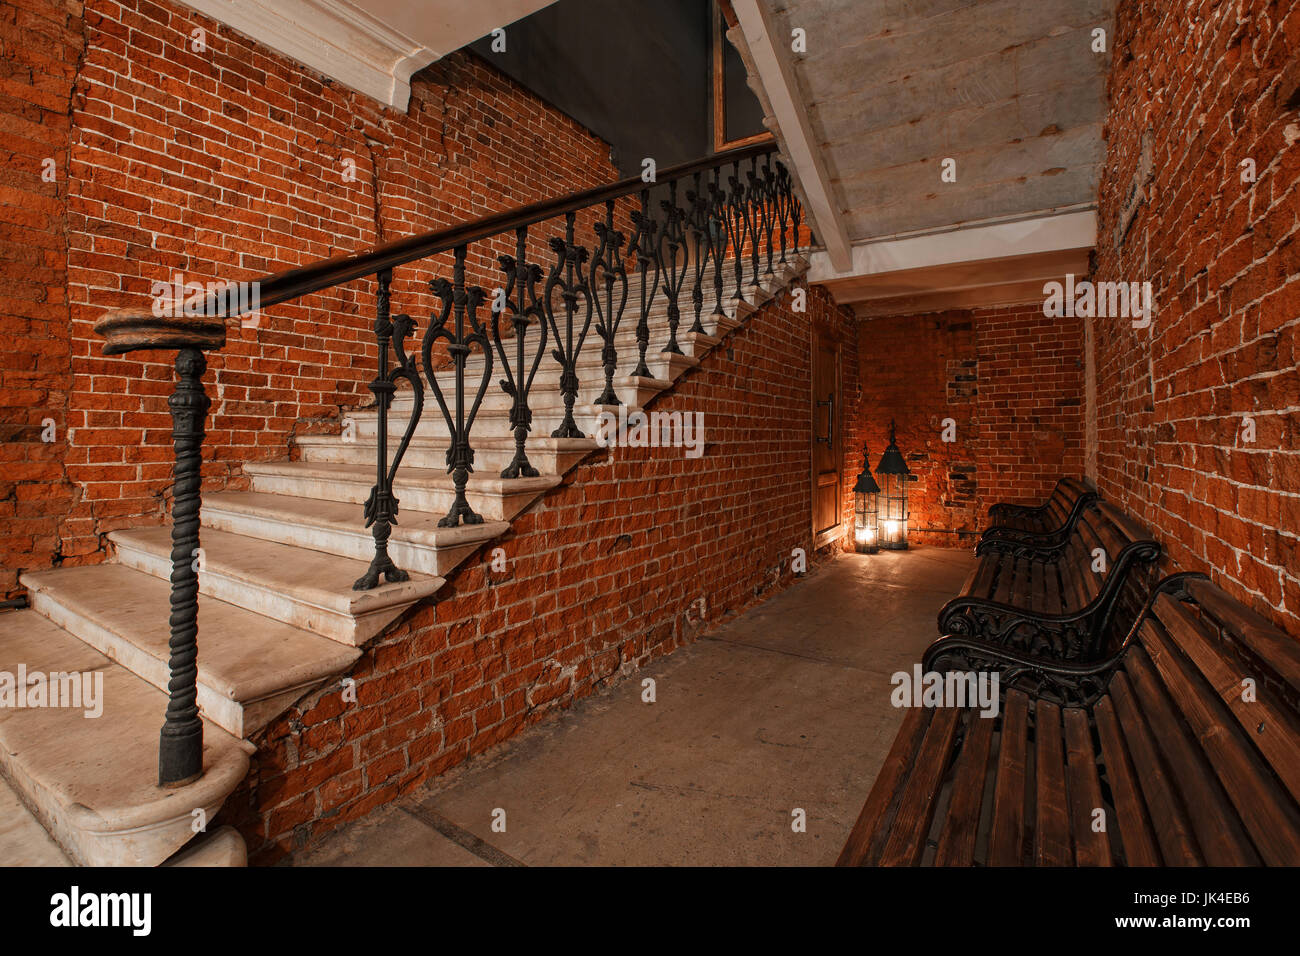 Modern Industrial Creative Workspace Staircase With Textured Brick Stock Photo Alamy